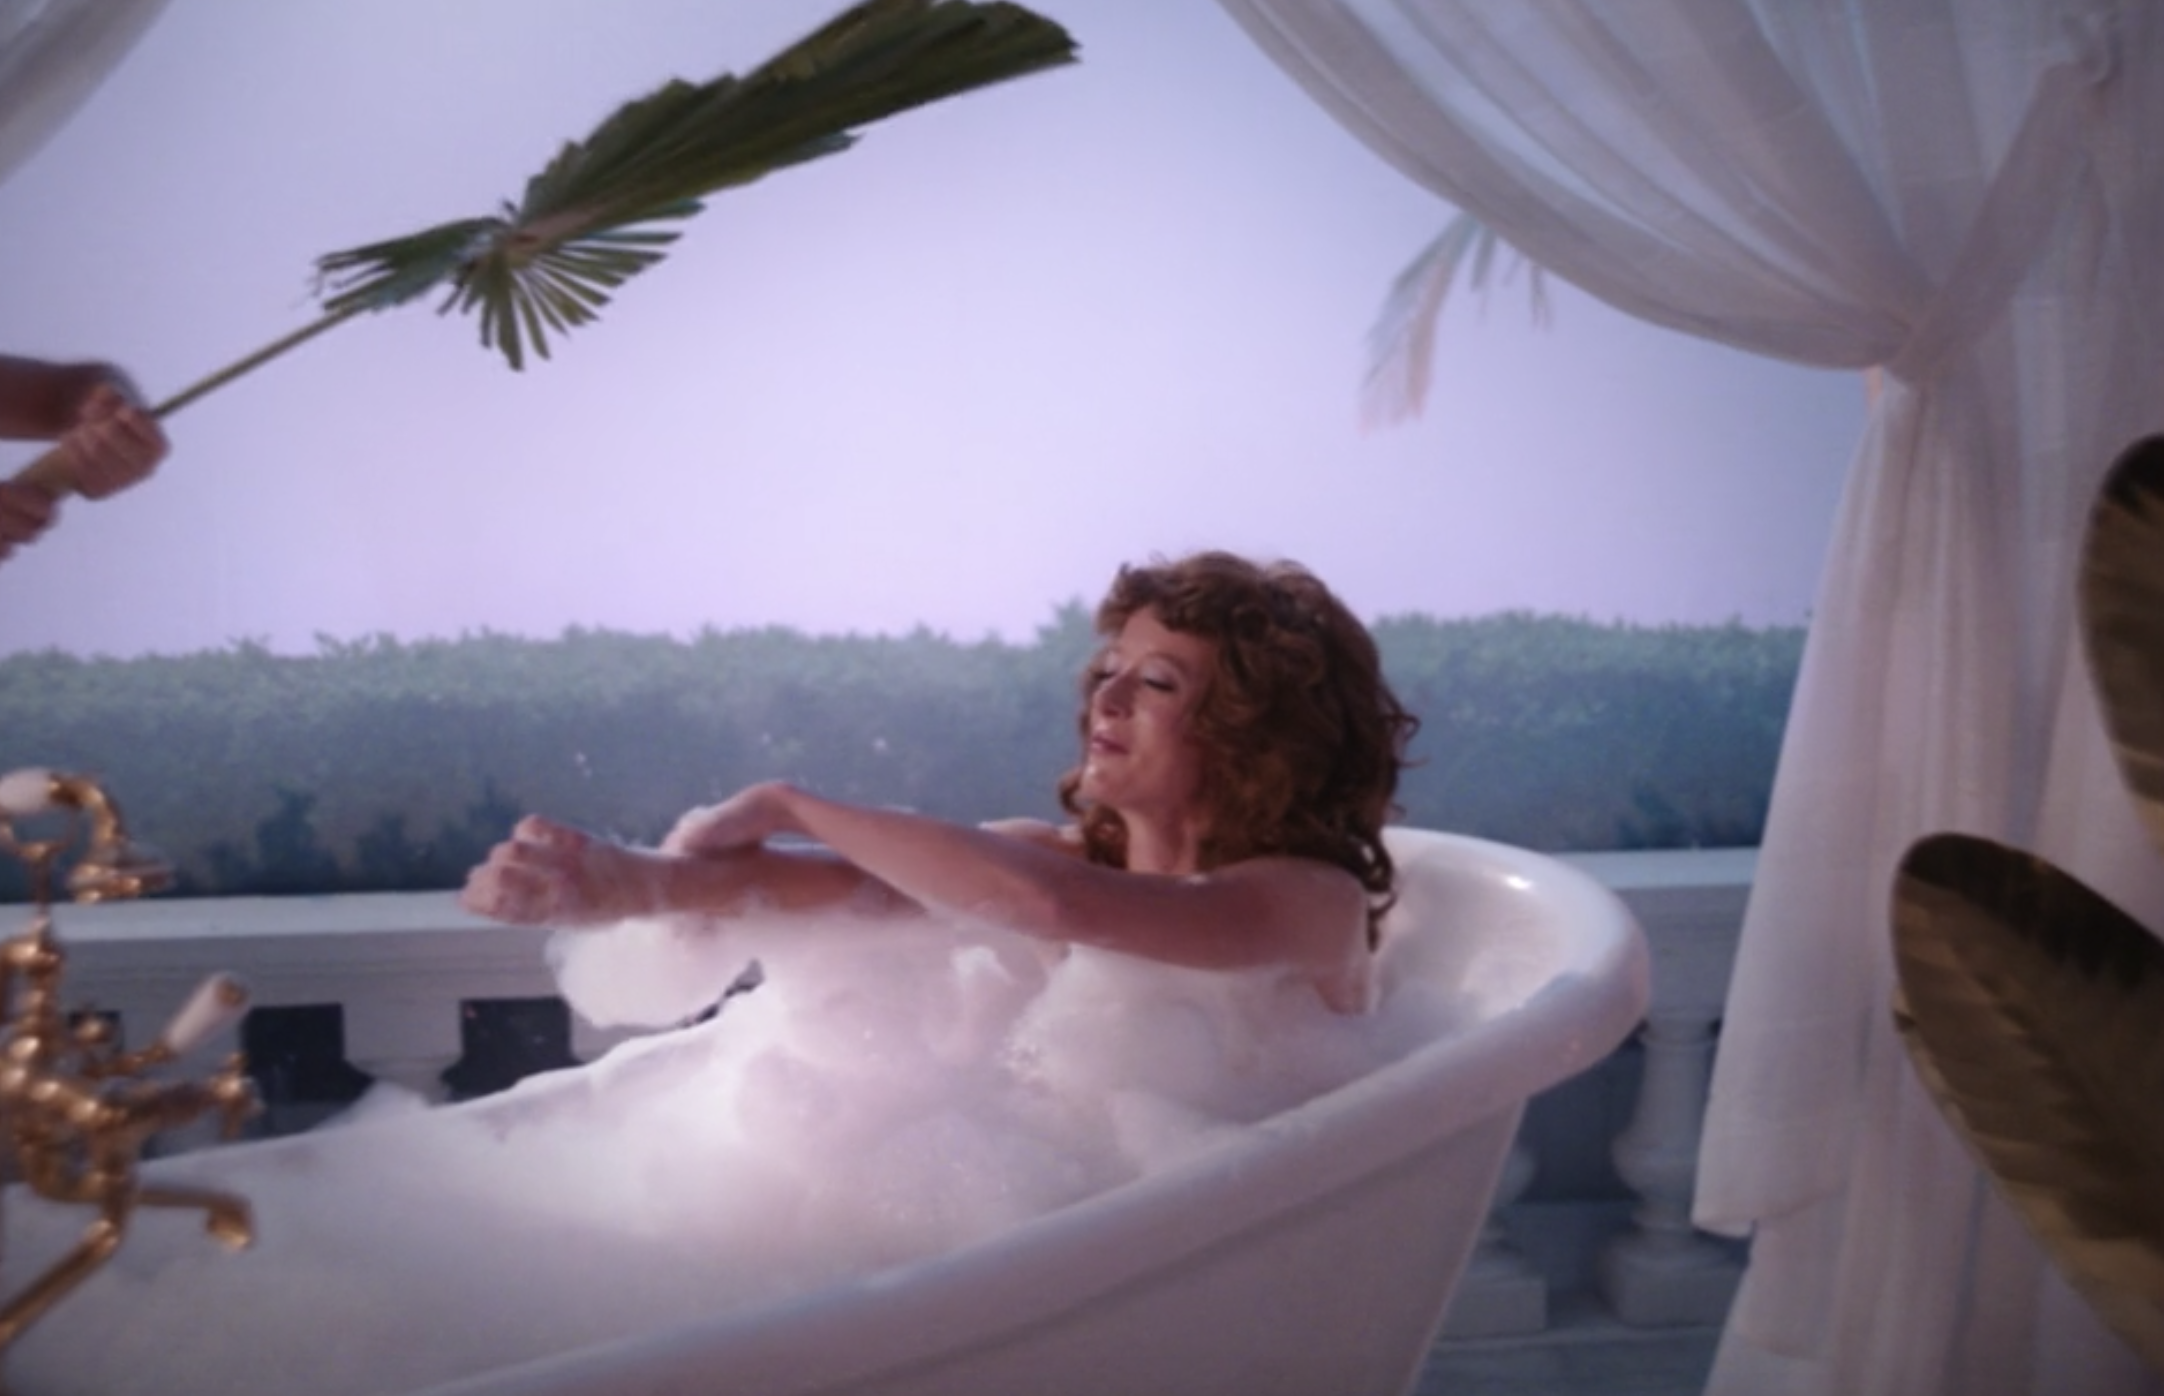 A woman taking a bath in the Hydra Soak commercial